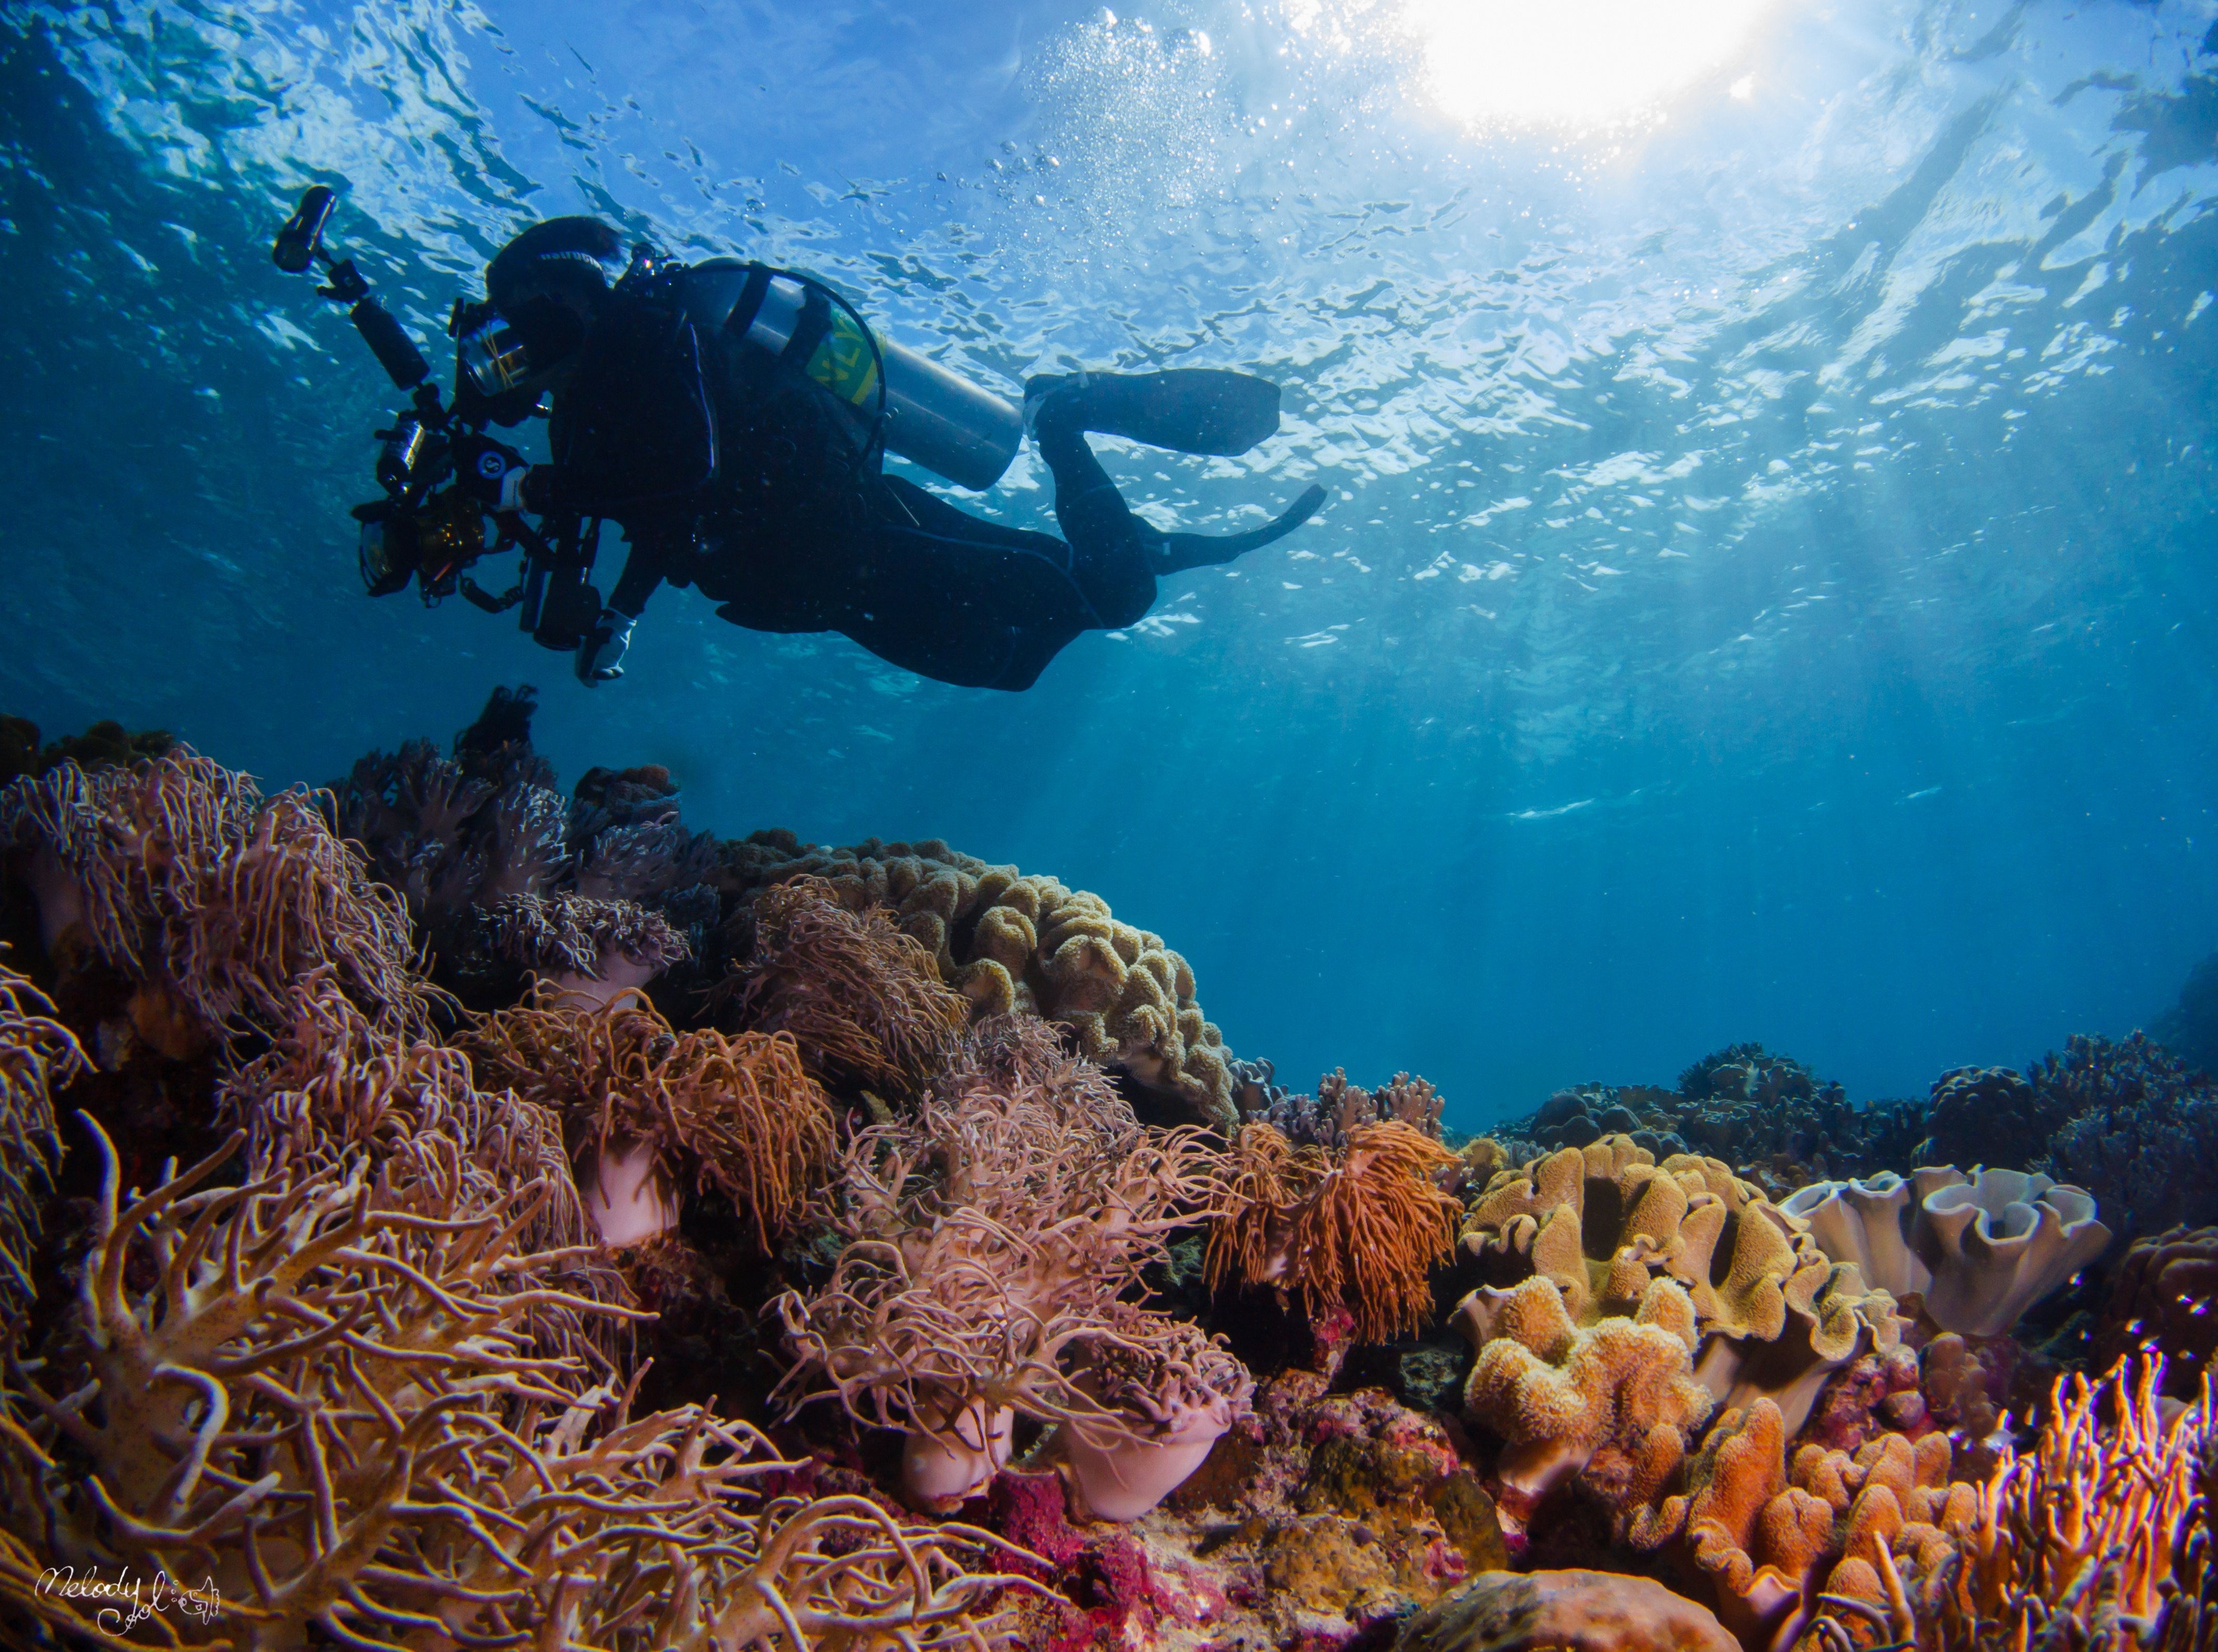 Diver and corals by Cool.jpg